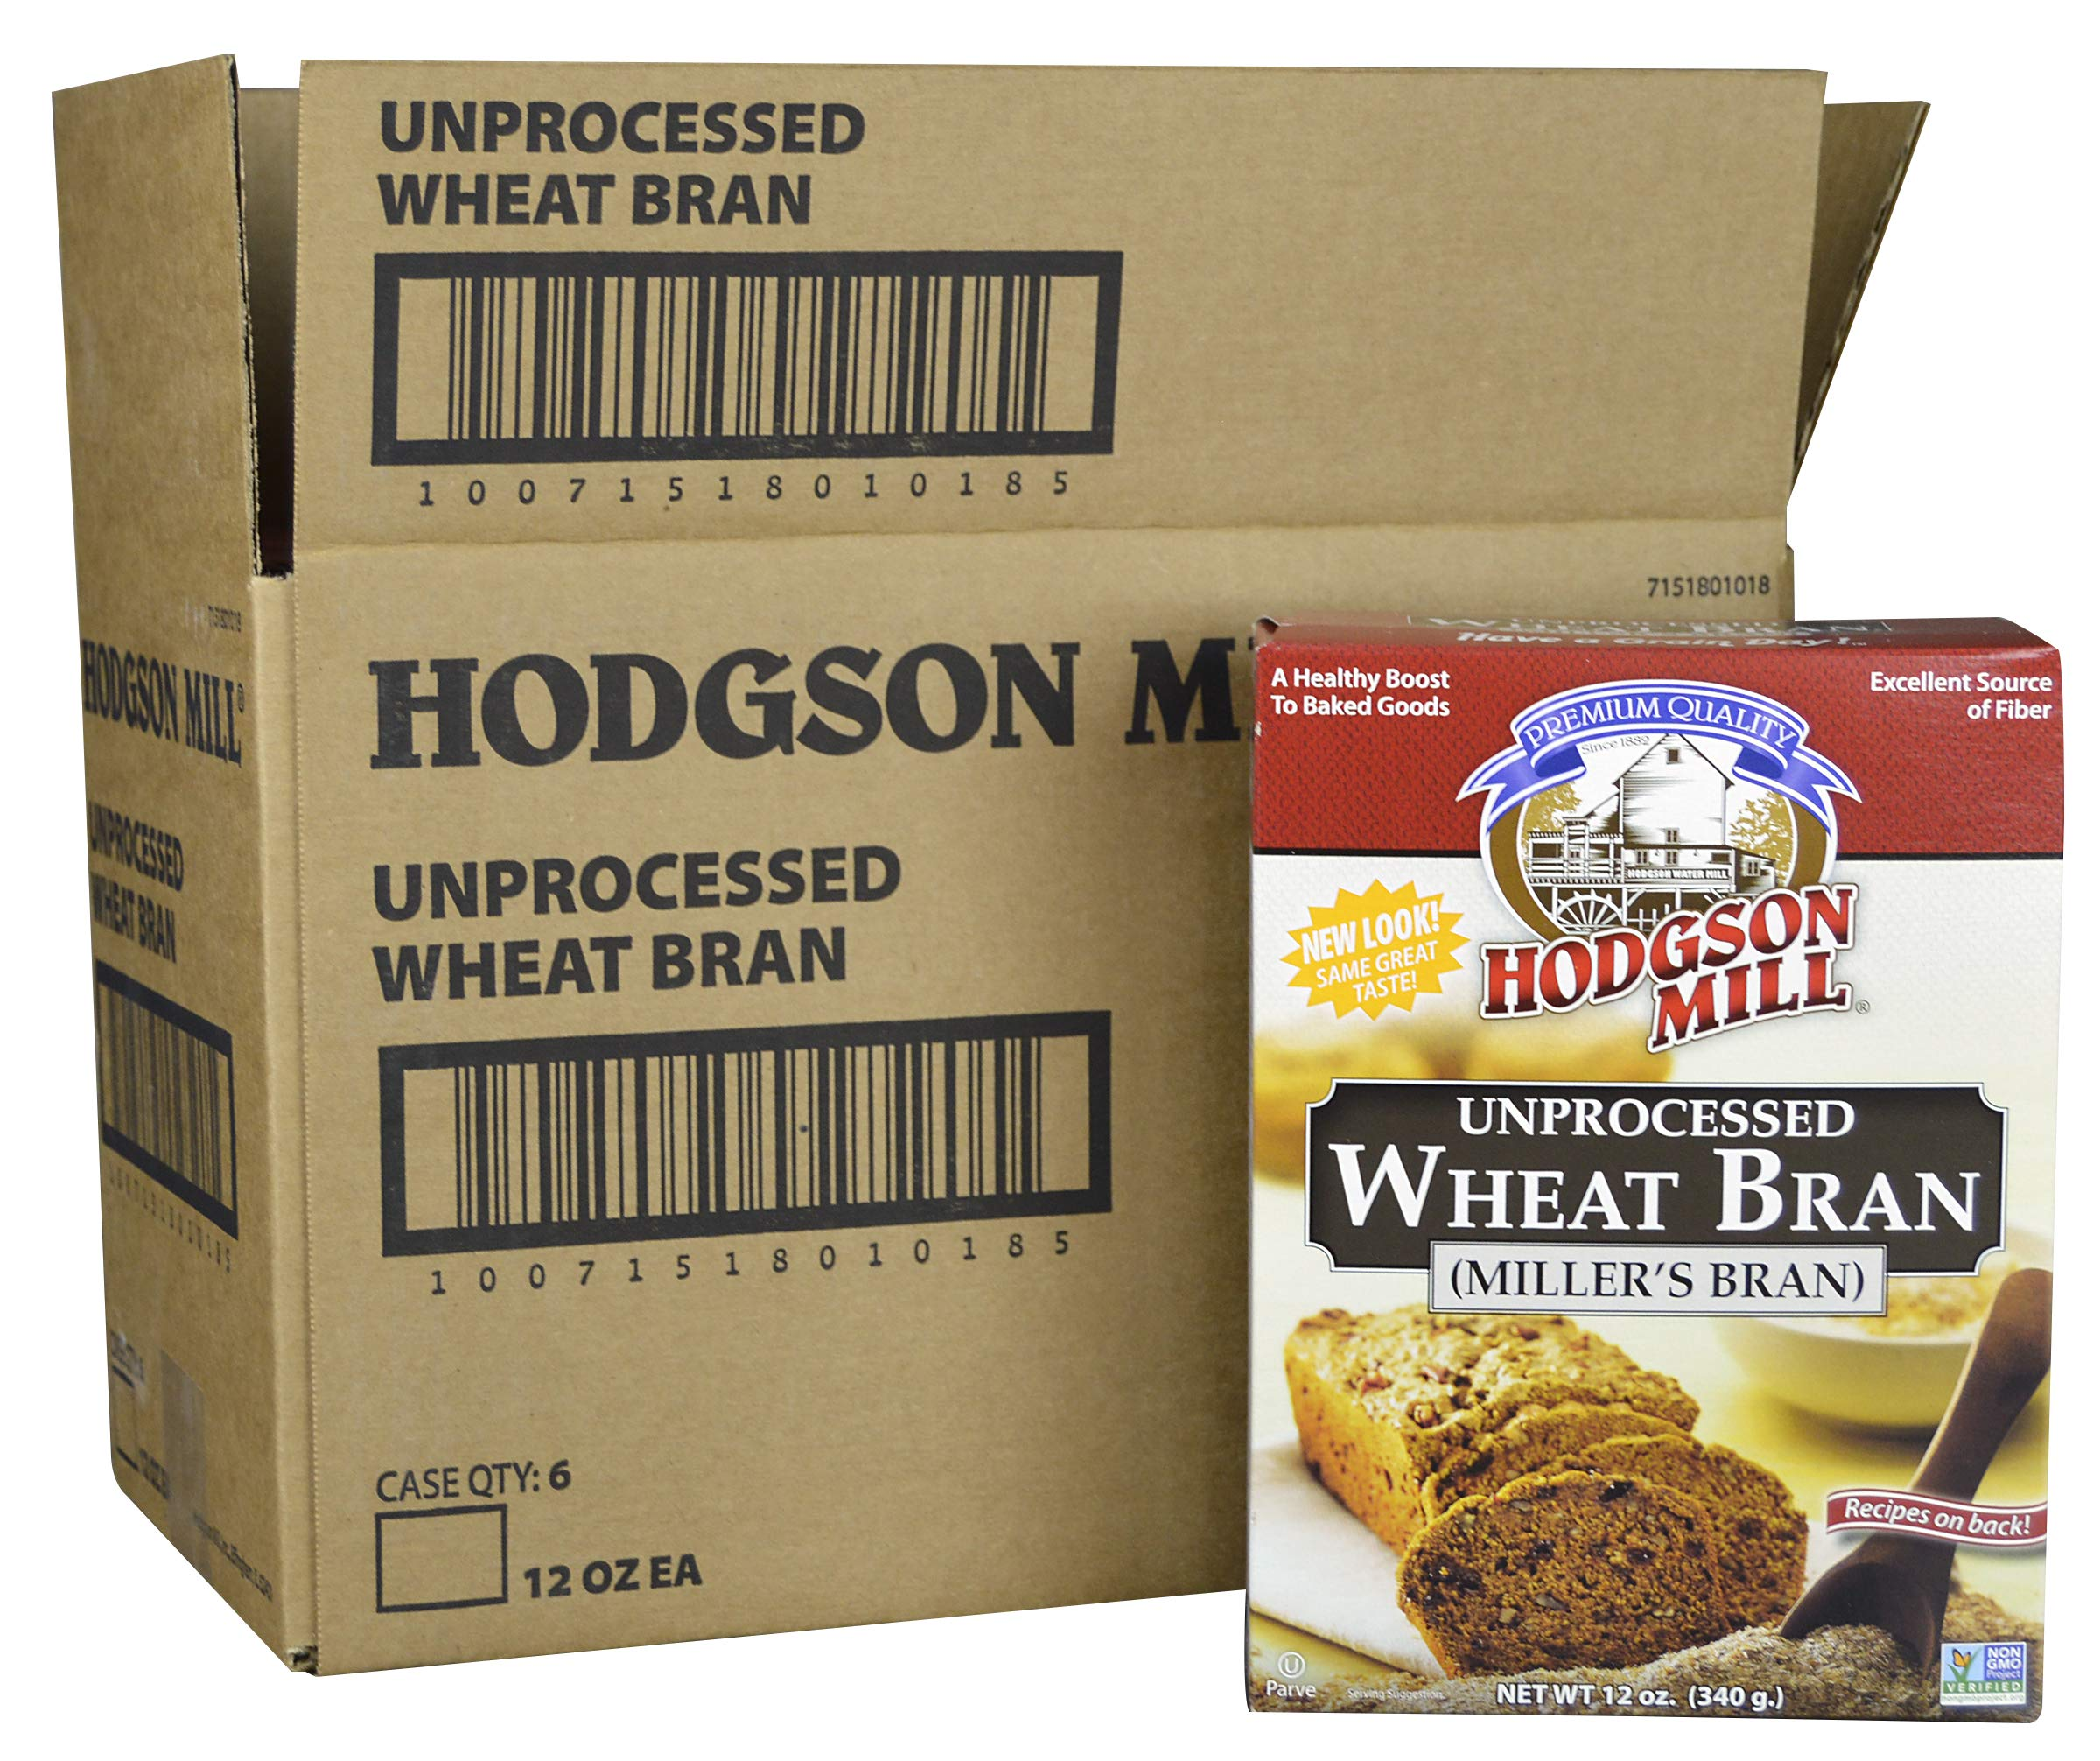 Hodgson Mill Wheat Bran, Unprocessed Millers Bran, 12-Ounce (Pack of 6) by Hodgson Mill (Image #4)